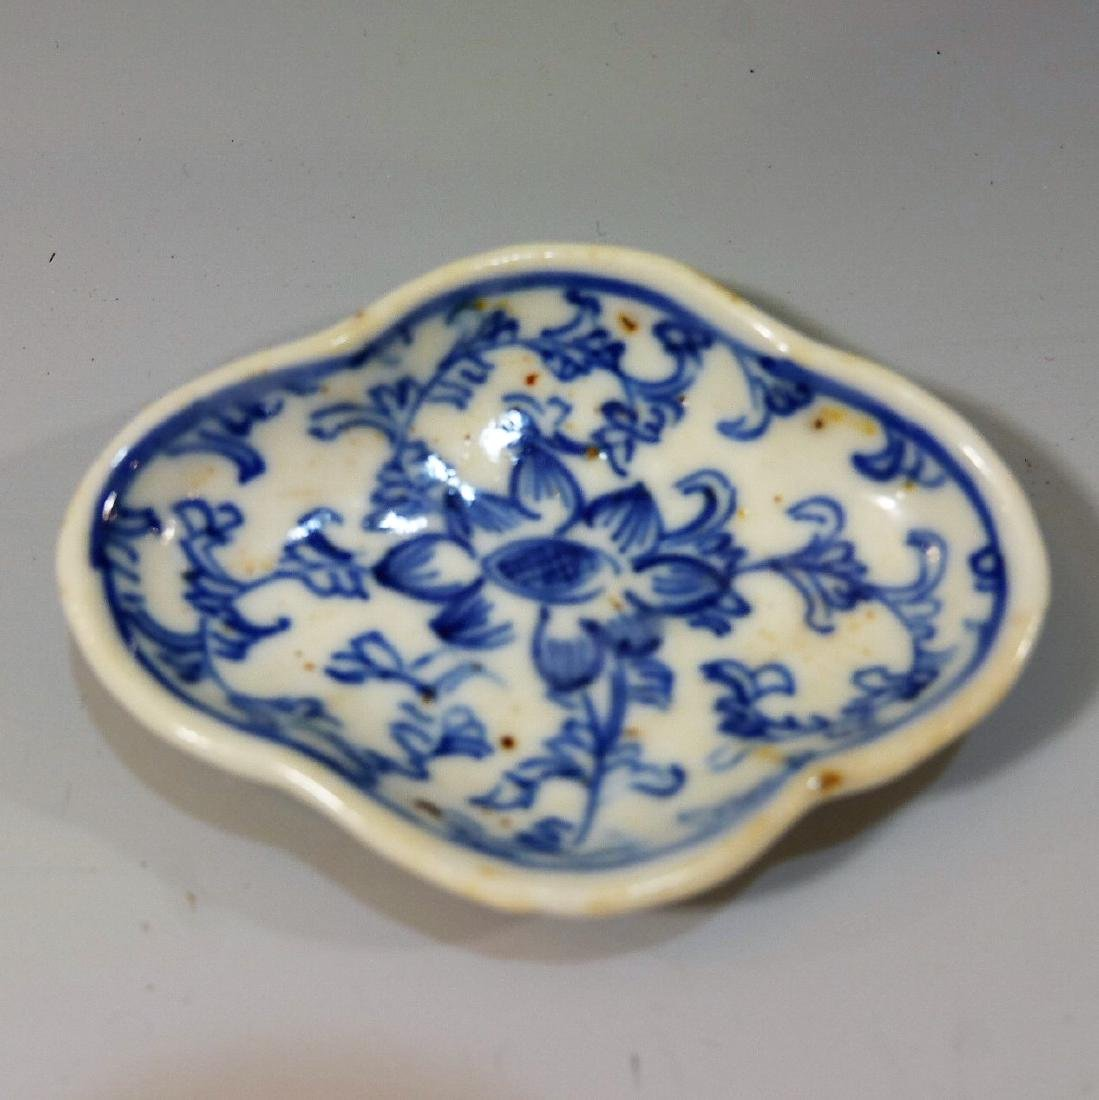 CHINESE ANTIQUE BLUE WHITE PORCELAIN DISH - QING